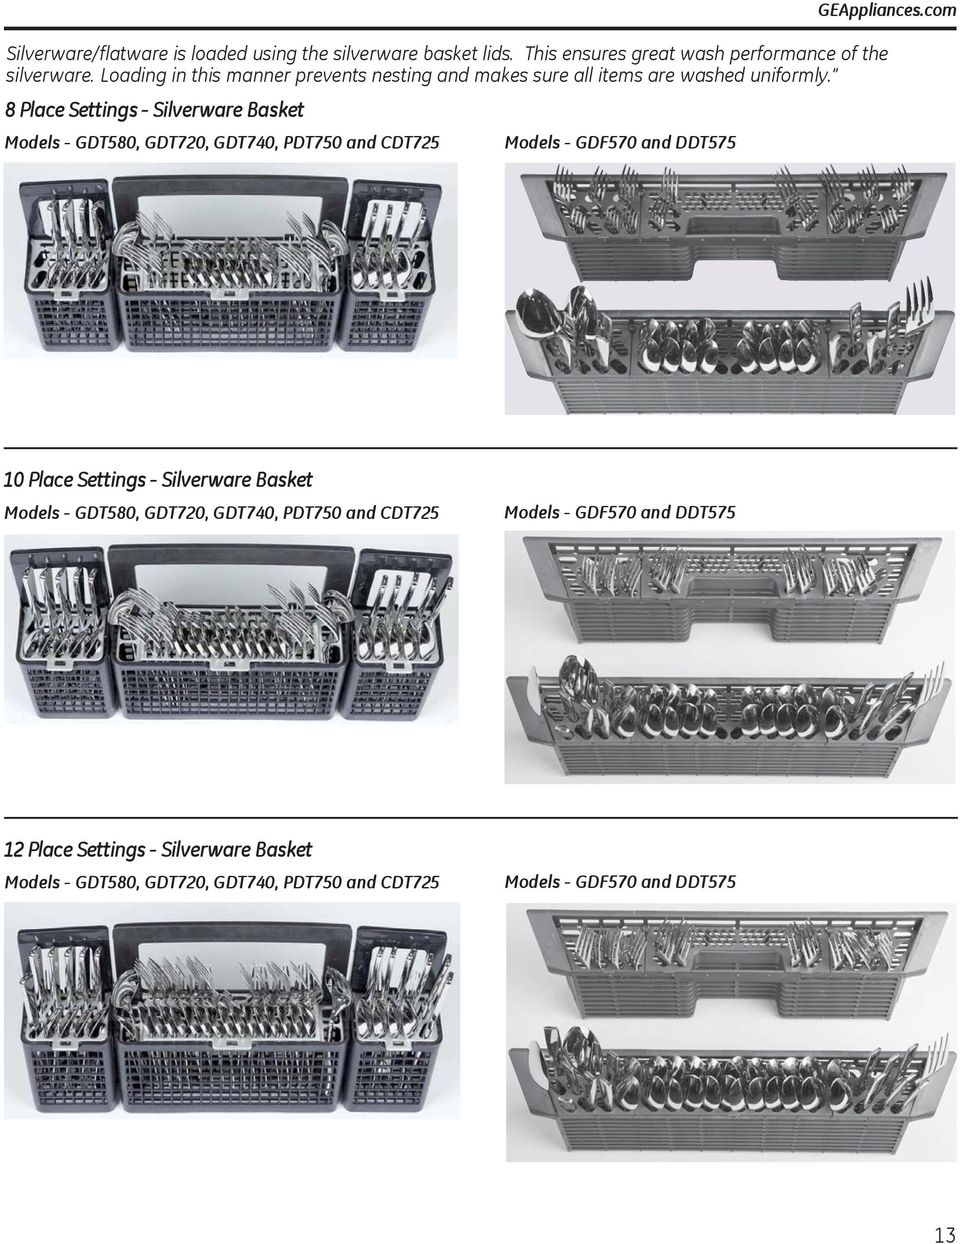 Models - GDT580, GDT720, GDT740, PDT750 and CDT725 Models - GDF570 and DDT575 10 Place Settings - Silverware Basket Models - GDT580, GDT720,